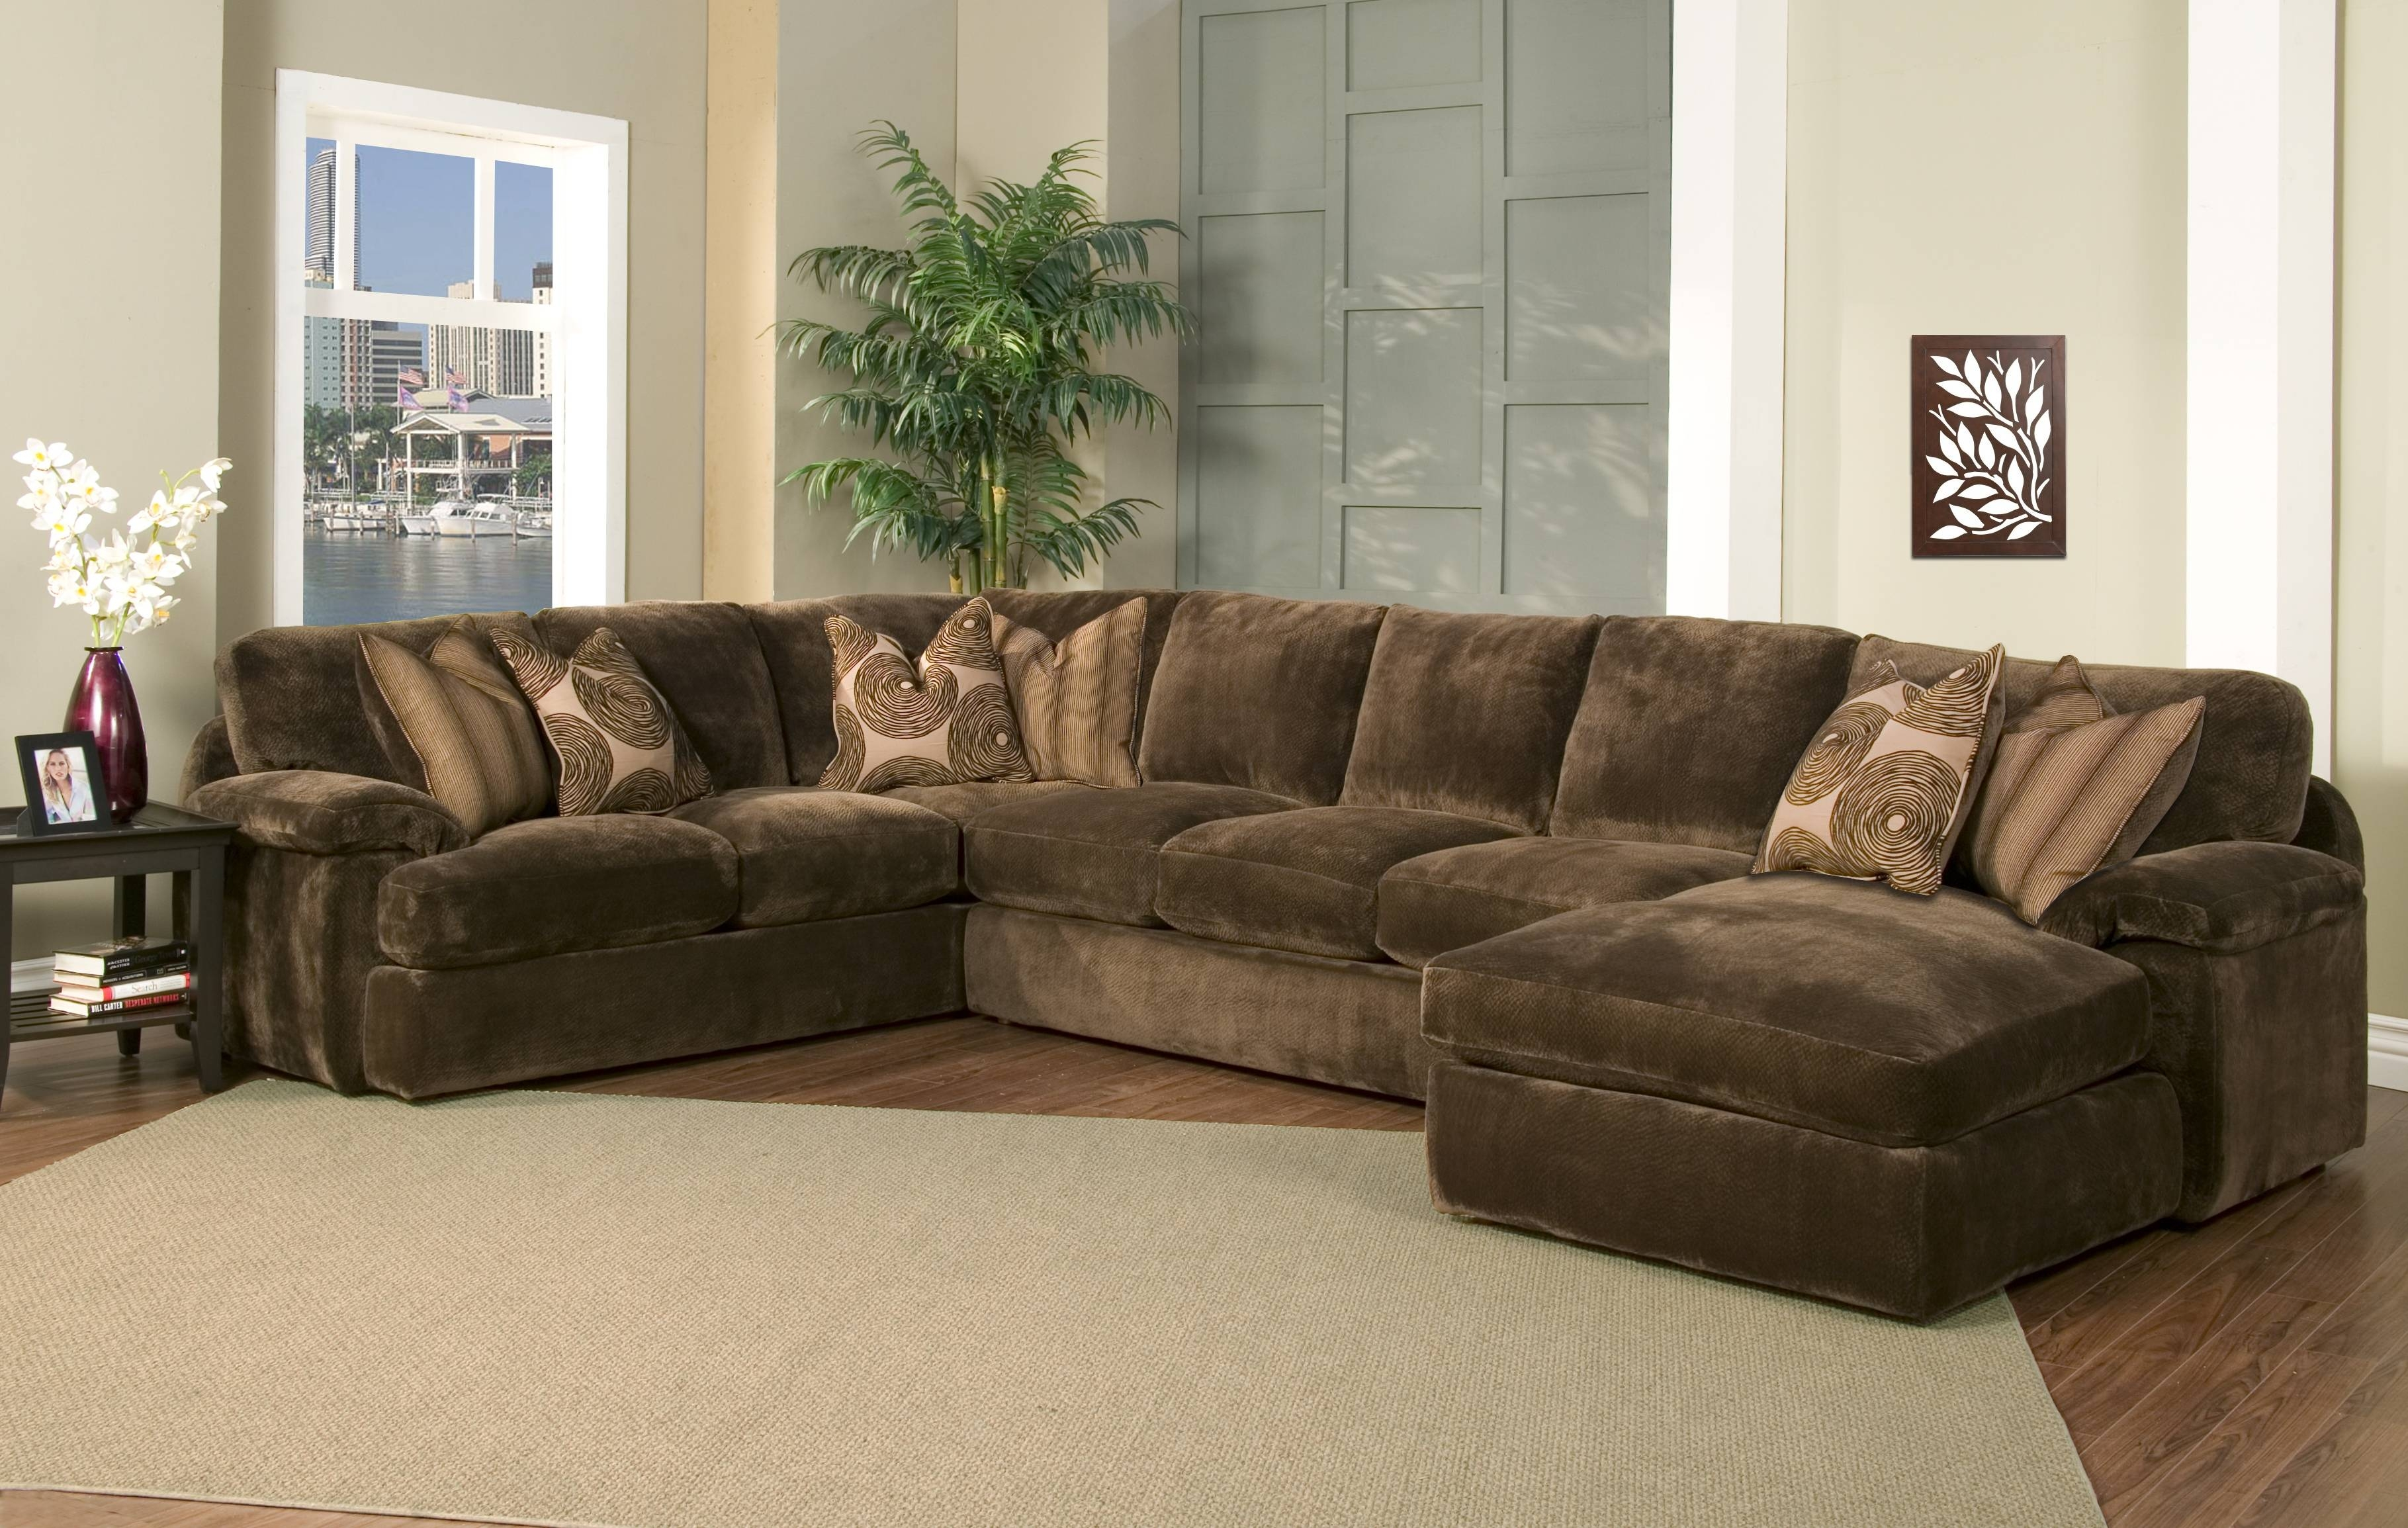 12 Best Ideas Of Down Feather Sectional Sofa Inside Down Feather Sectional  Sofa (Image 1